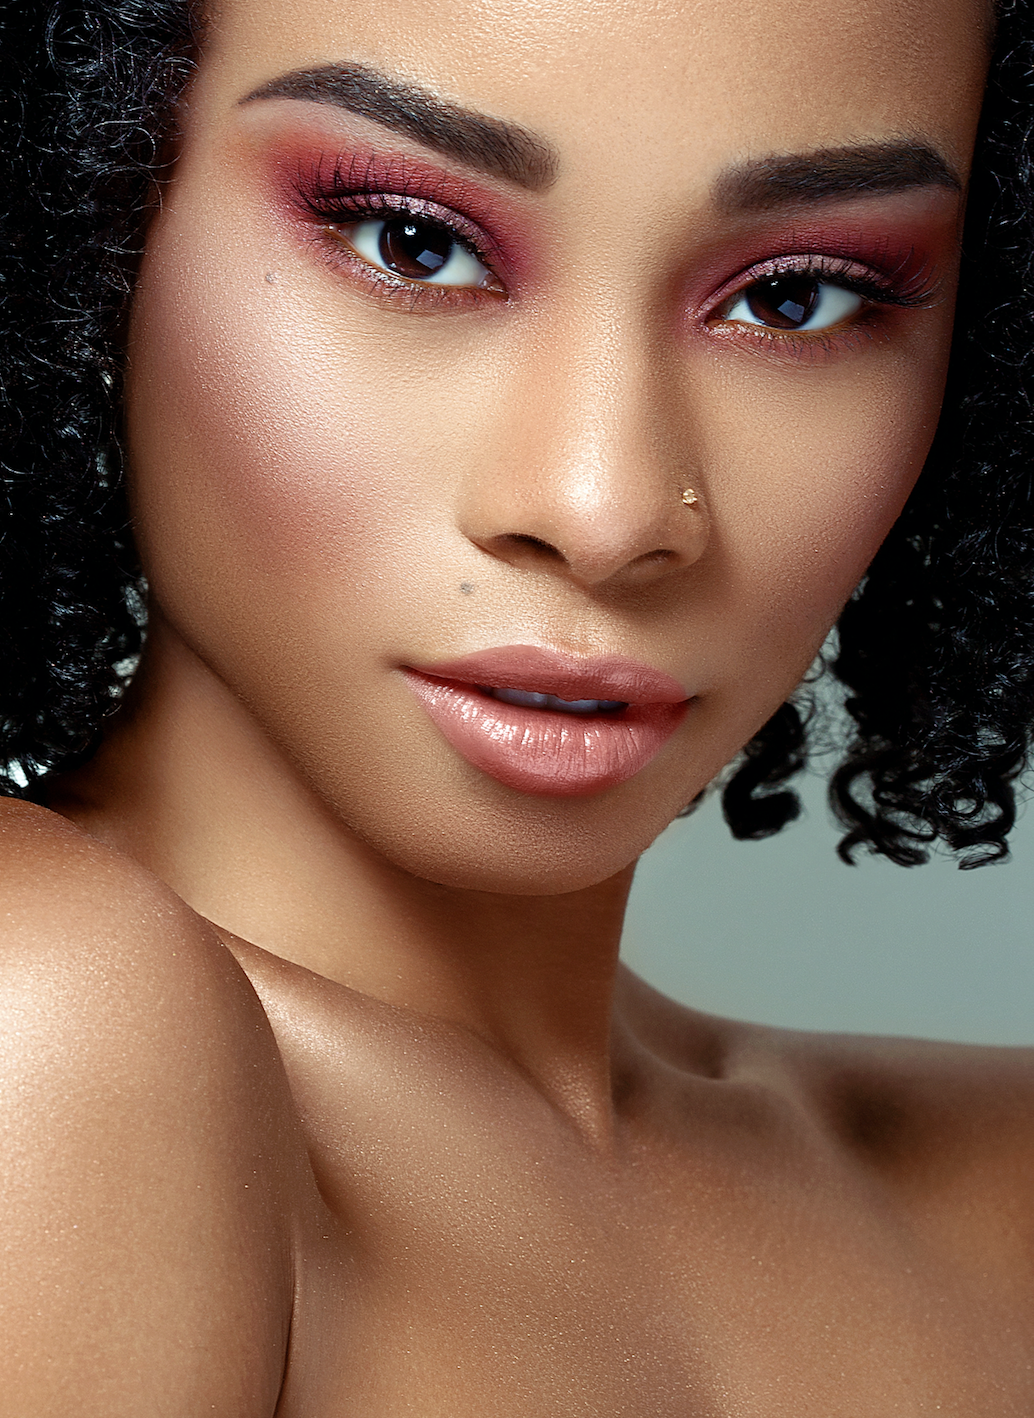 Summer Pro Tip:  Still want #glowy skin but don't want to look cakey with powders? Start from the skin care using facial waters to brighten and refresh your complexion. This will give you a #glowy base. Then use some liquid highlighters to build up the shine on the highest points of your face.